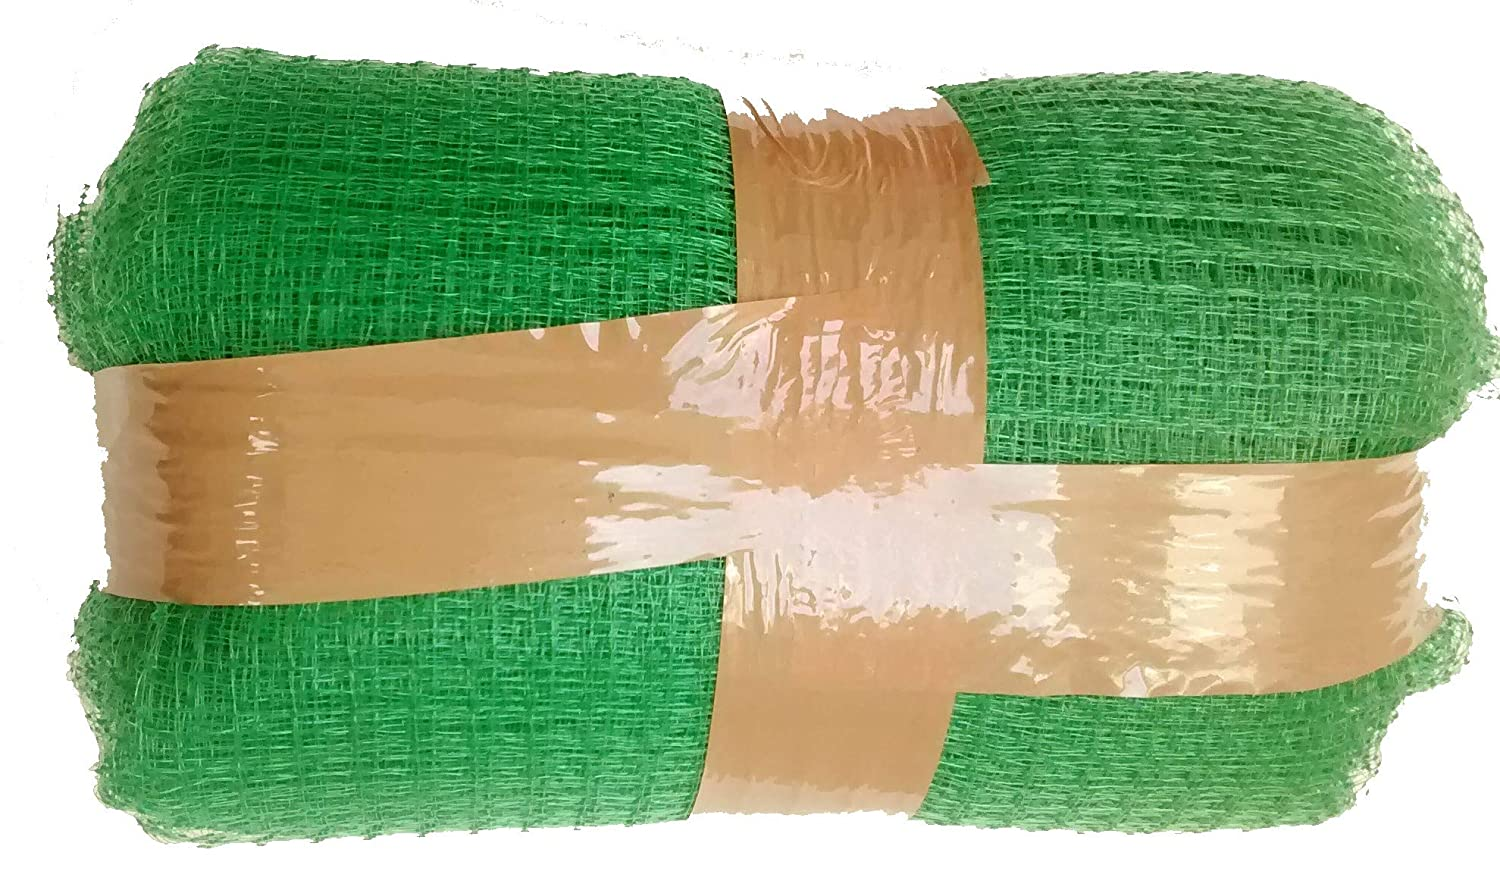 10M x 4M Garden Netting - Strong Fine Mesh (10mm) - Polypropolene: Crop & Vegetable Protection, Fruit Cages, Pond Protection, Many other uses. As used by proffesional nurseries Tenax